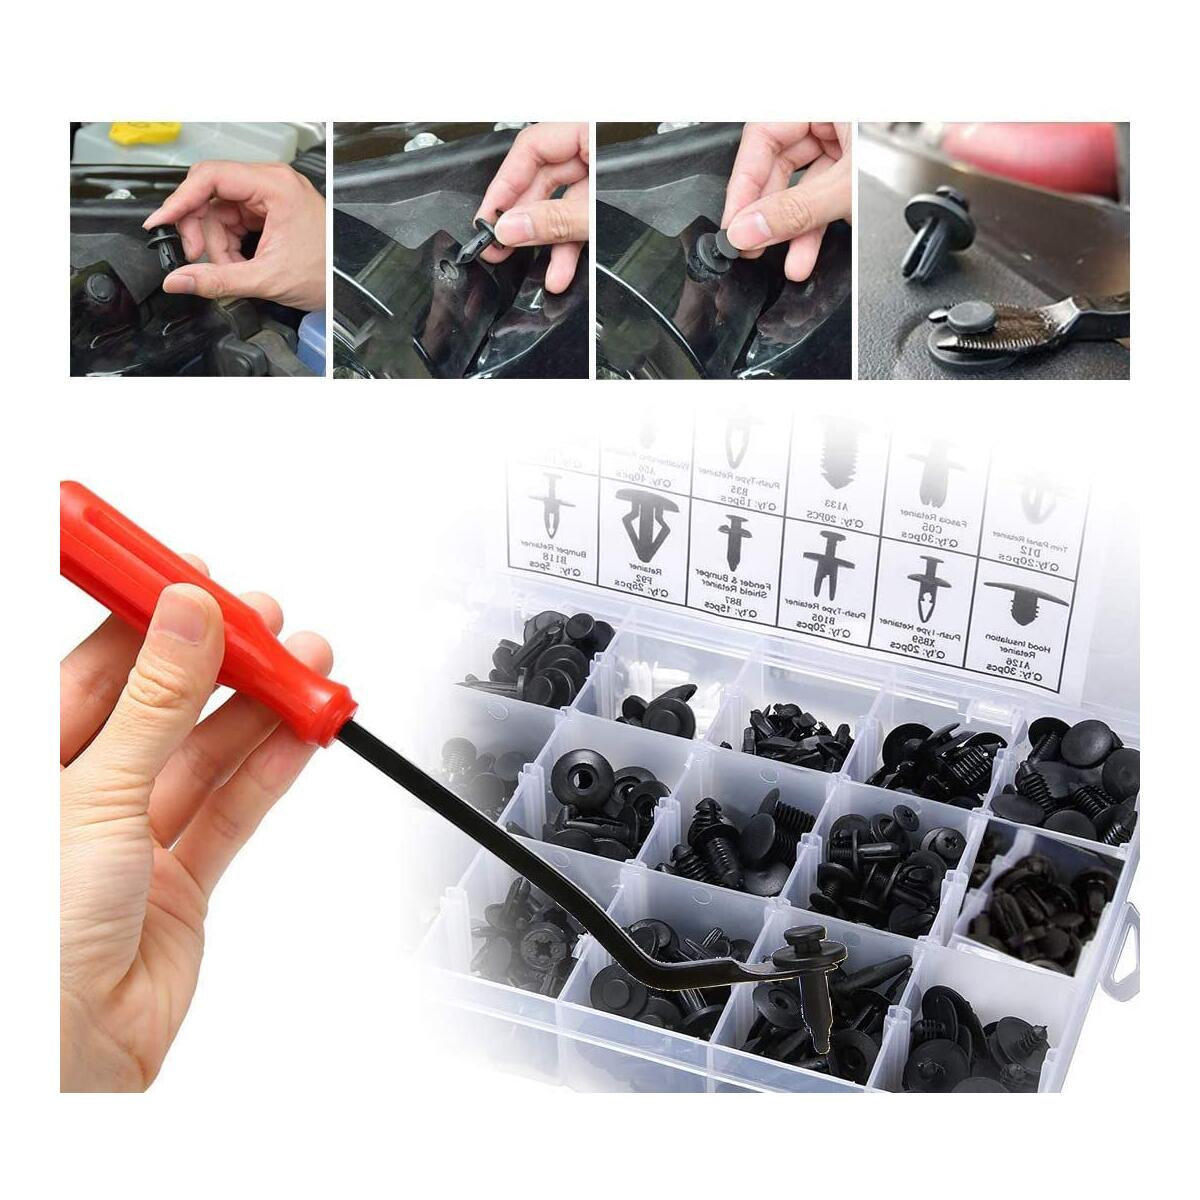 KCRTEK 255pcs Car Retainer Clips,Plastic Push Rivets auto Parts & Accessories with 12 Sizes for Toyota,GM,Ford,Honda,Acura,Chrysle